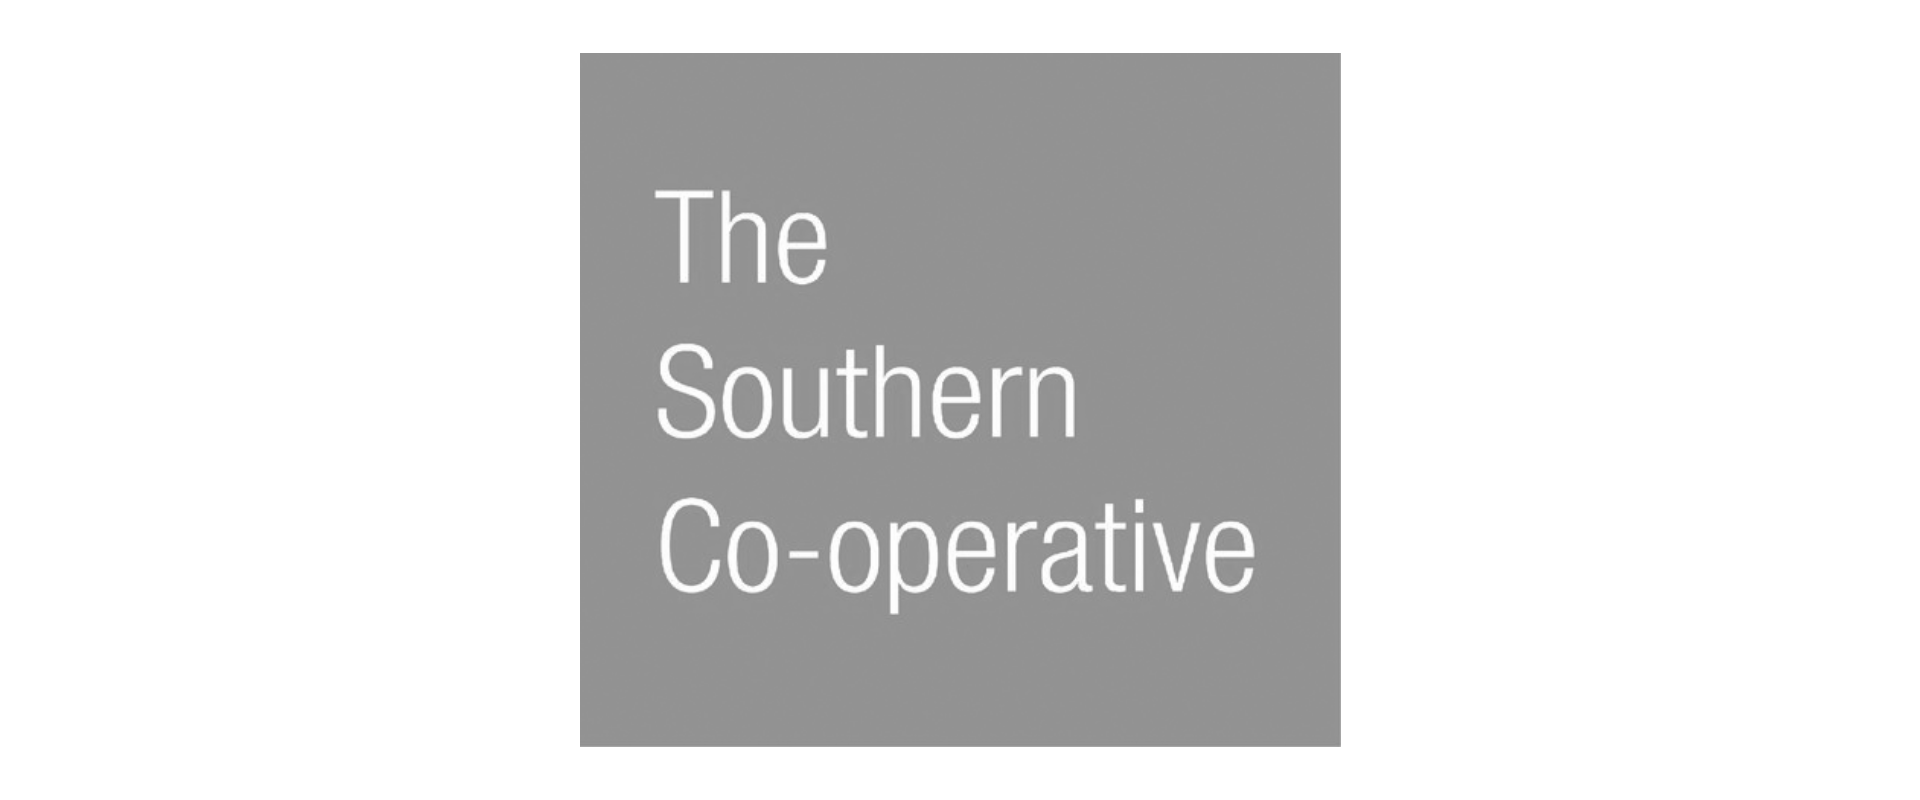 Studio 2 Media have produced for The Southern Co-operative